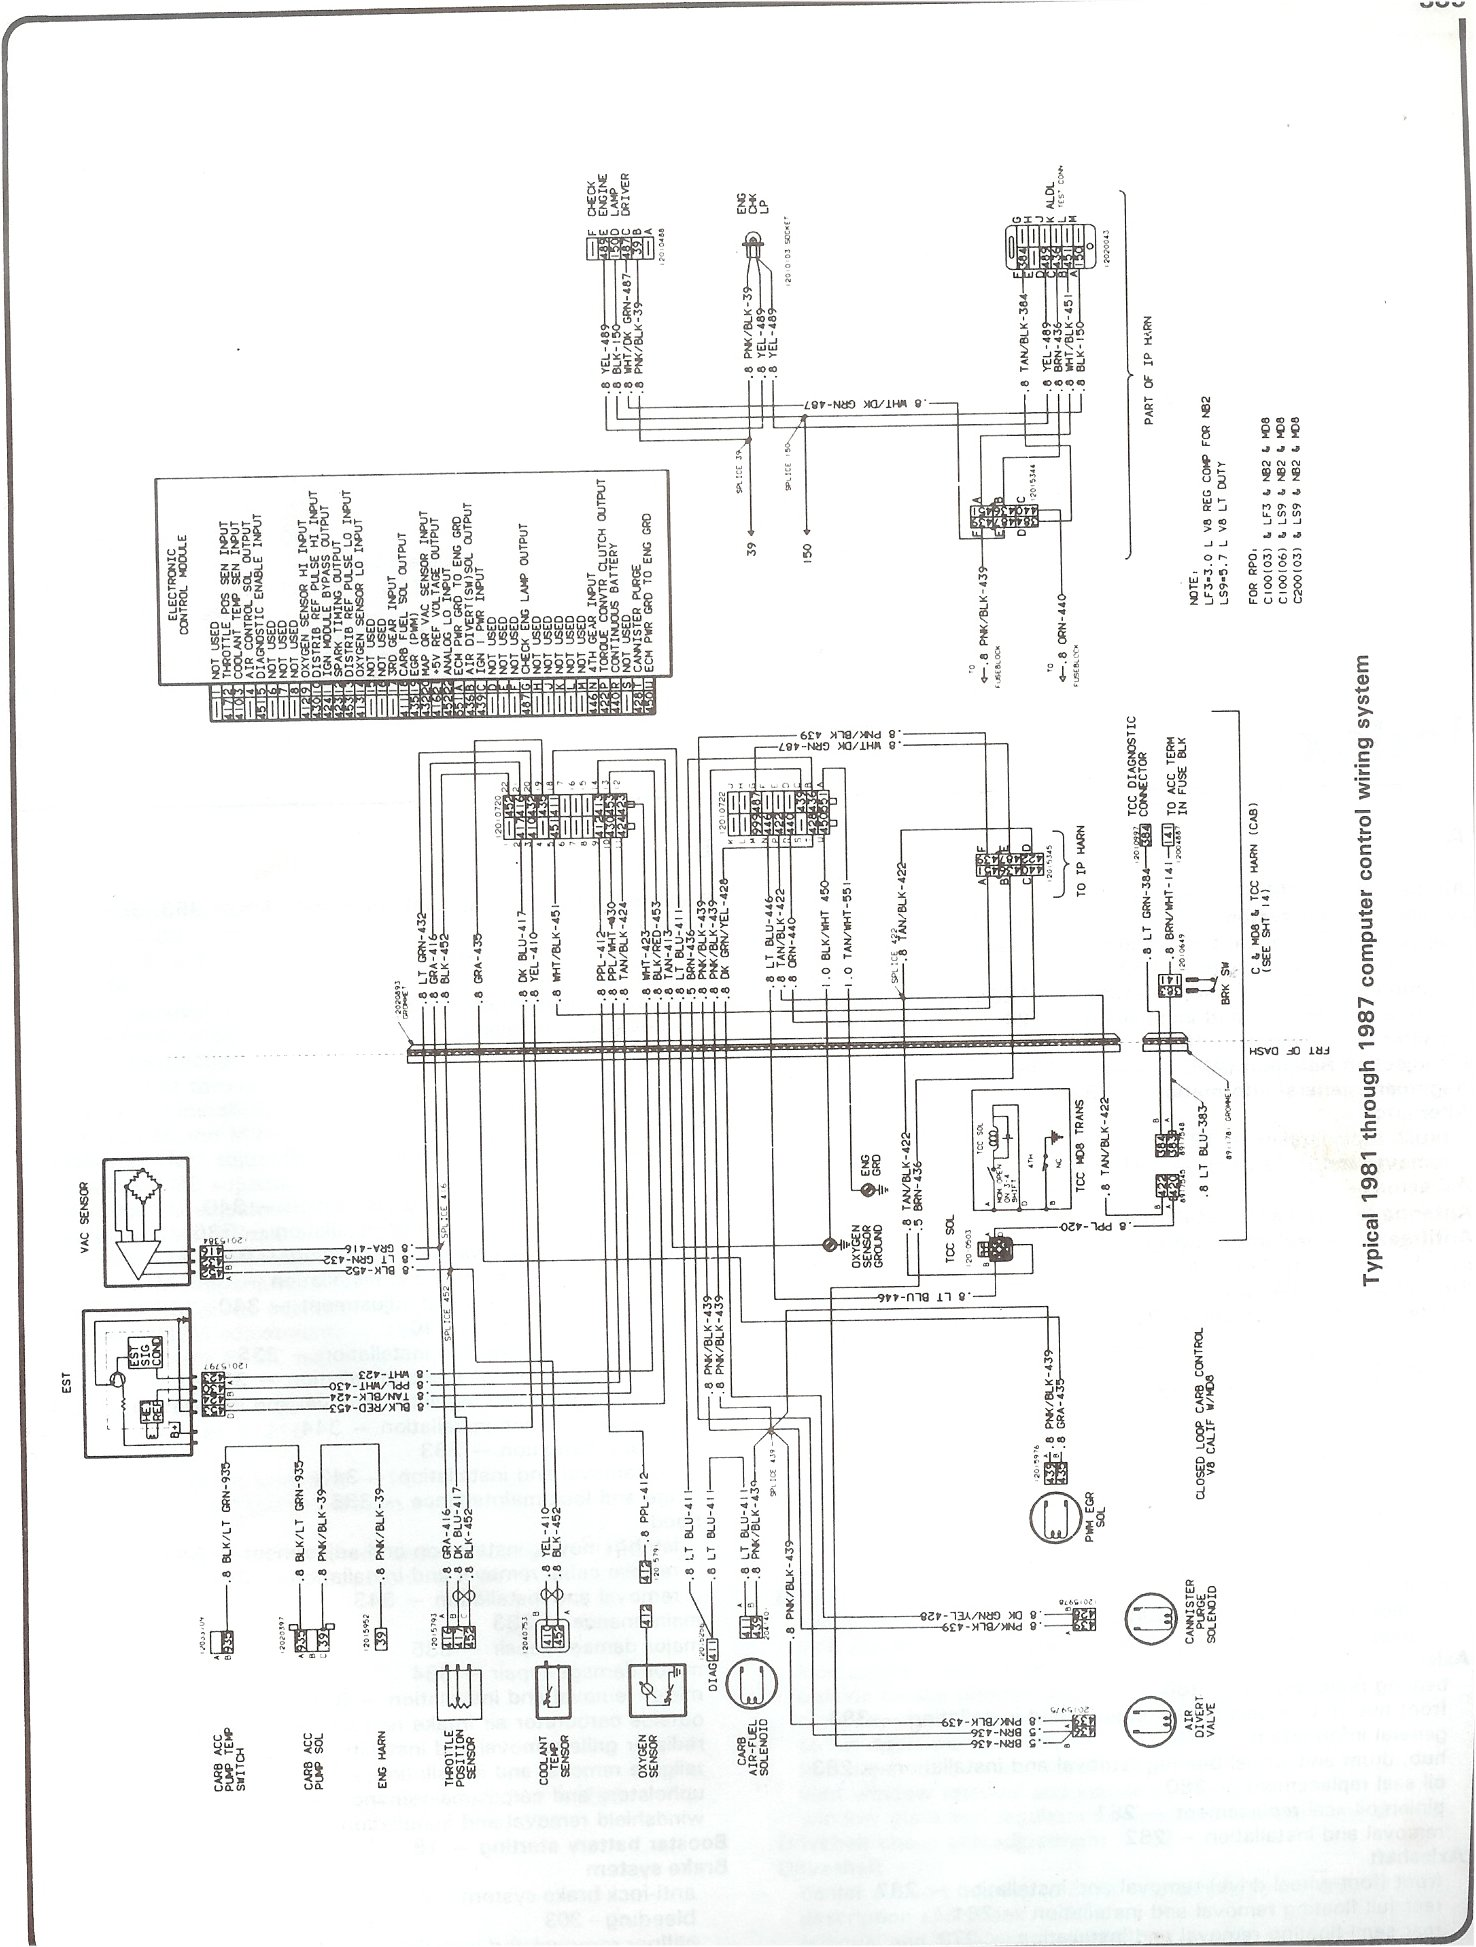 [SCHEMATICS_4LK]  Complete 73-87 Wiring Diagrams | Light Switch Wiring Diagram 1981 C10 |  | 73-87 Chevy Trucks